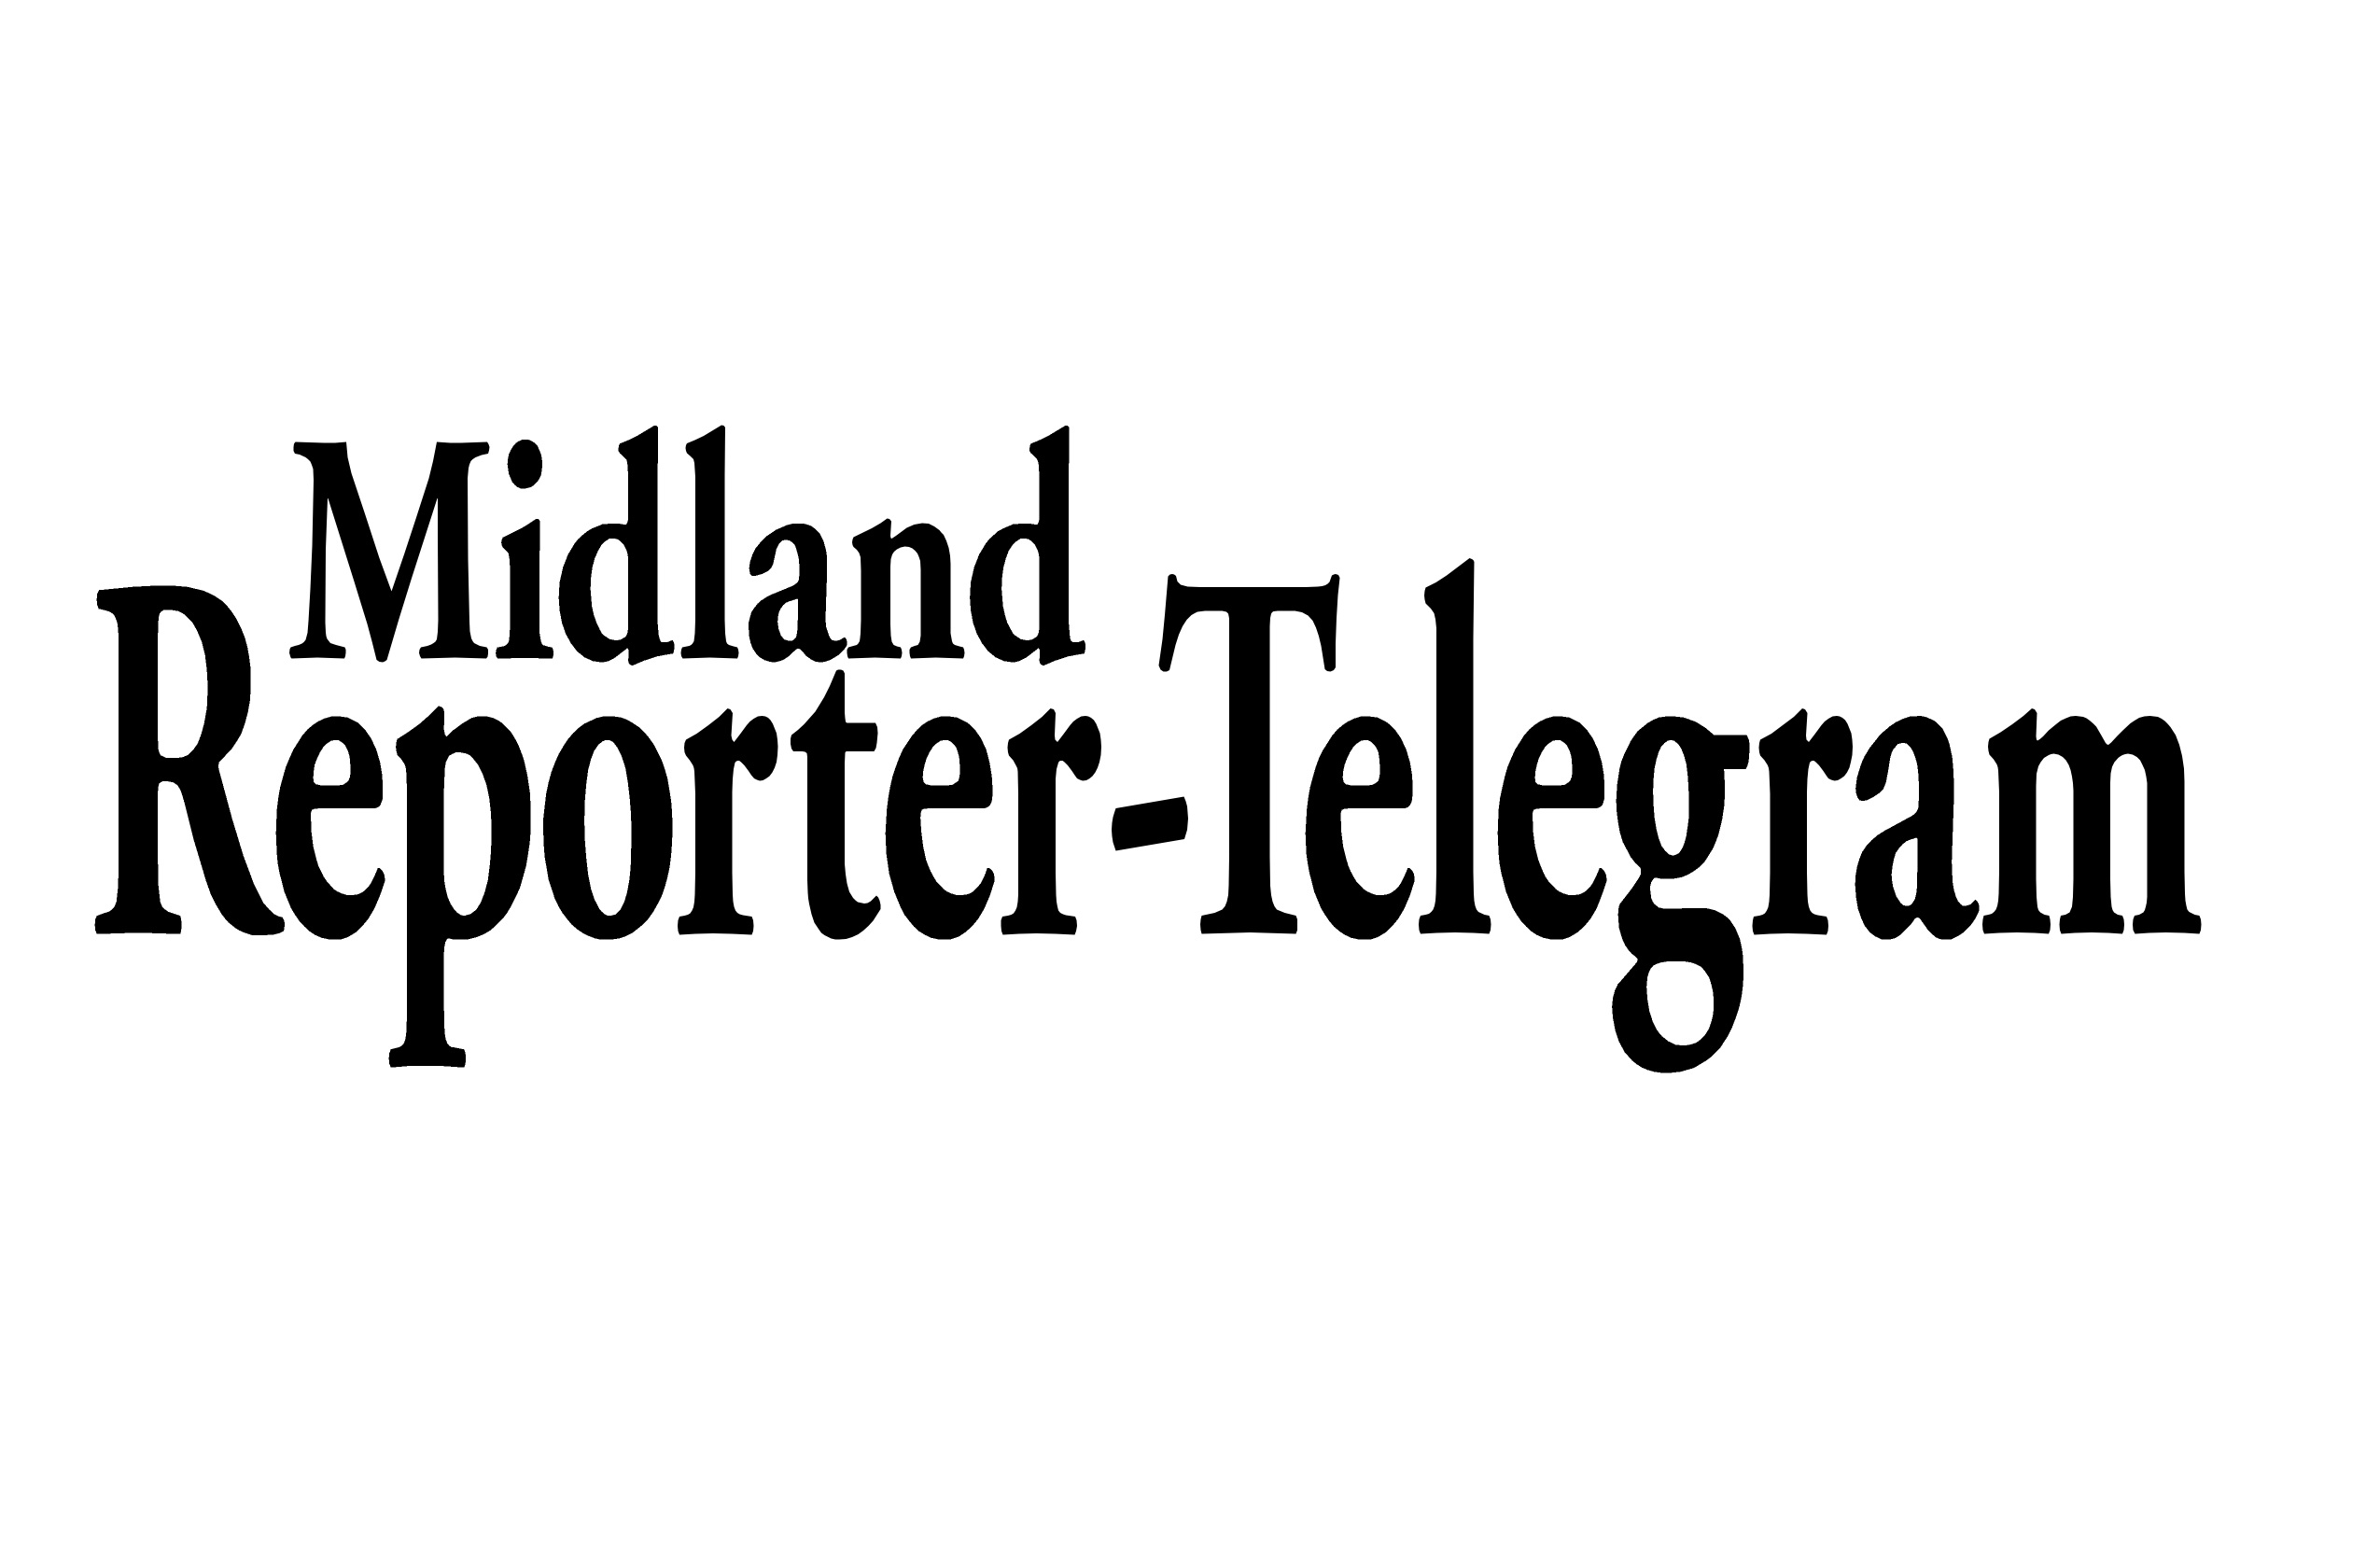 Midland Reporter-Telegram covers the use of ProntoForms